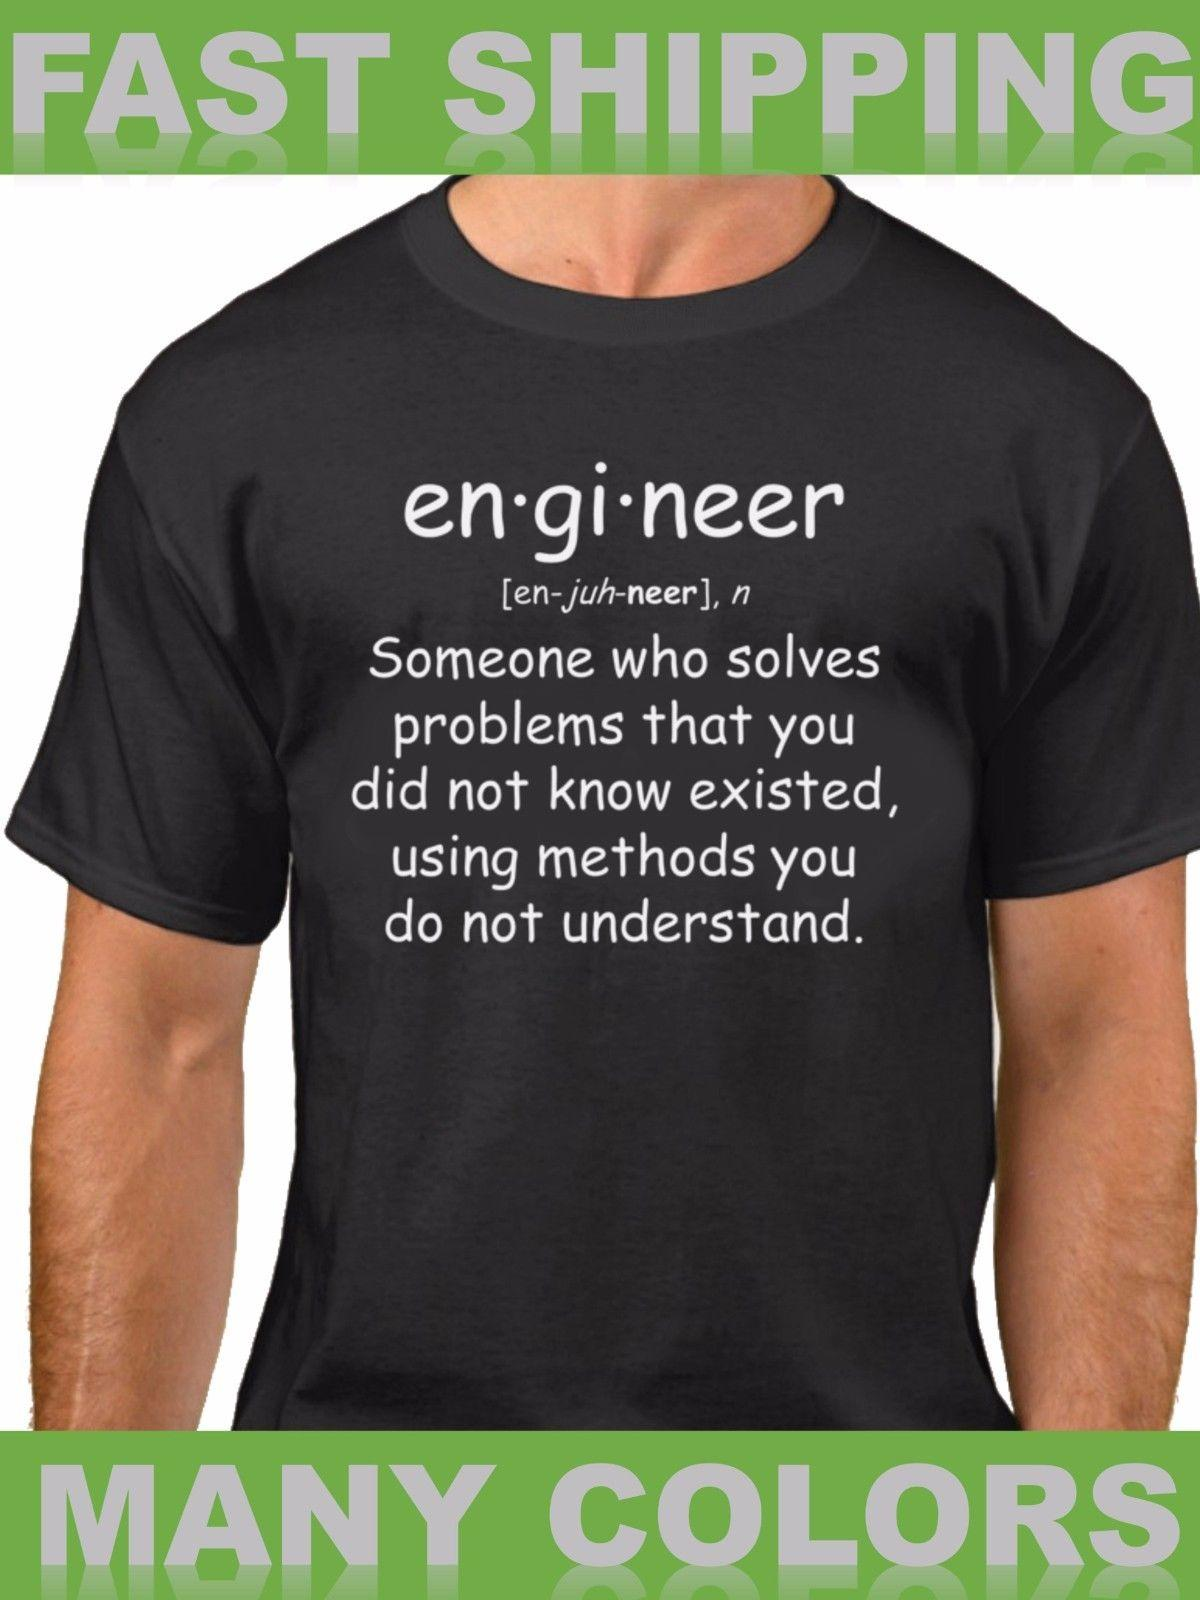 4bc417d6 Details Zu Engineer T Shirt Quote Tee Funny Gift Engineering Student T  Shirt Definition Funny Unisex Tee Funny Shirts Dress Shirt From Stshirt, ...